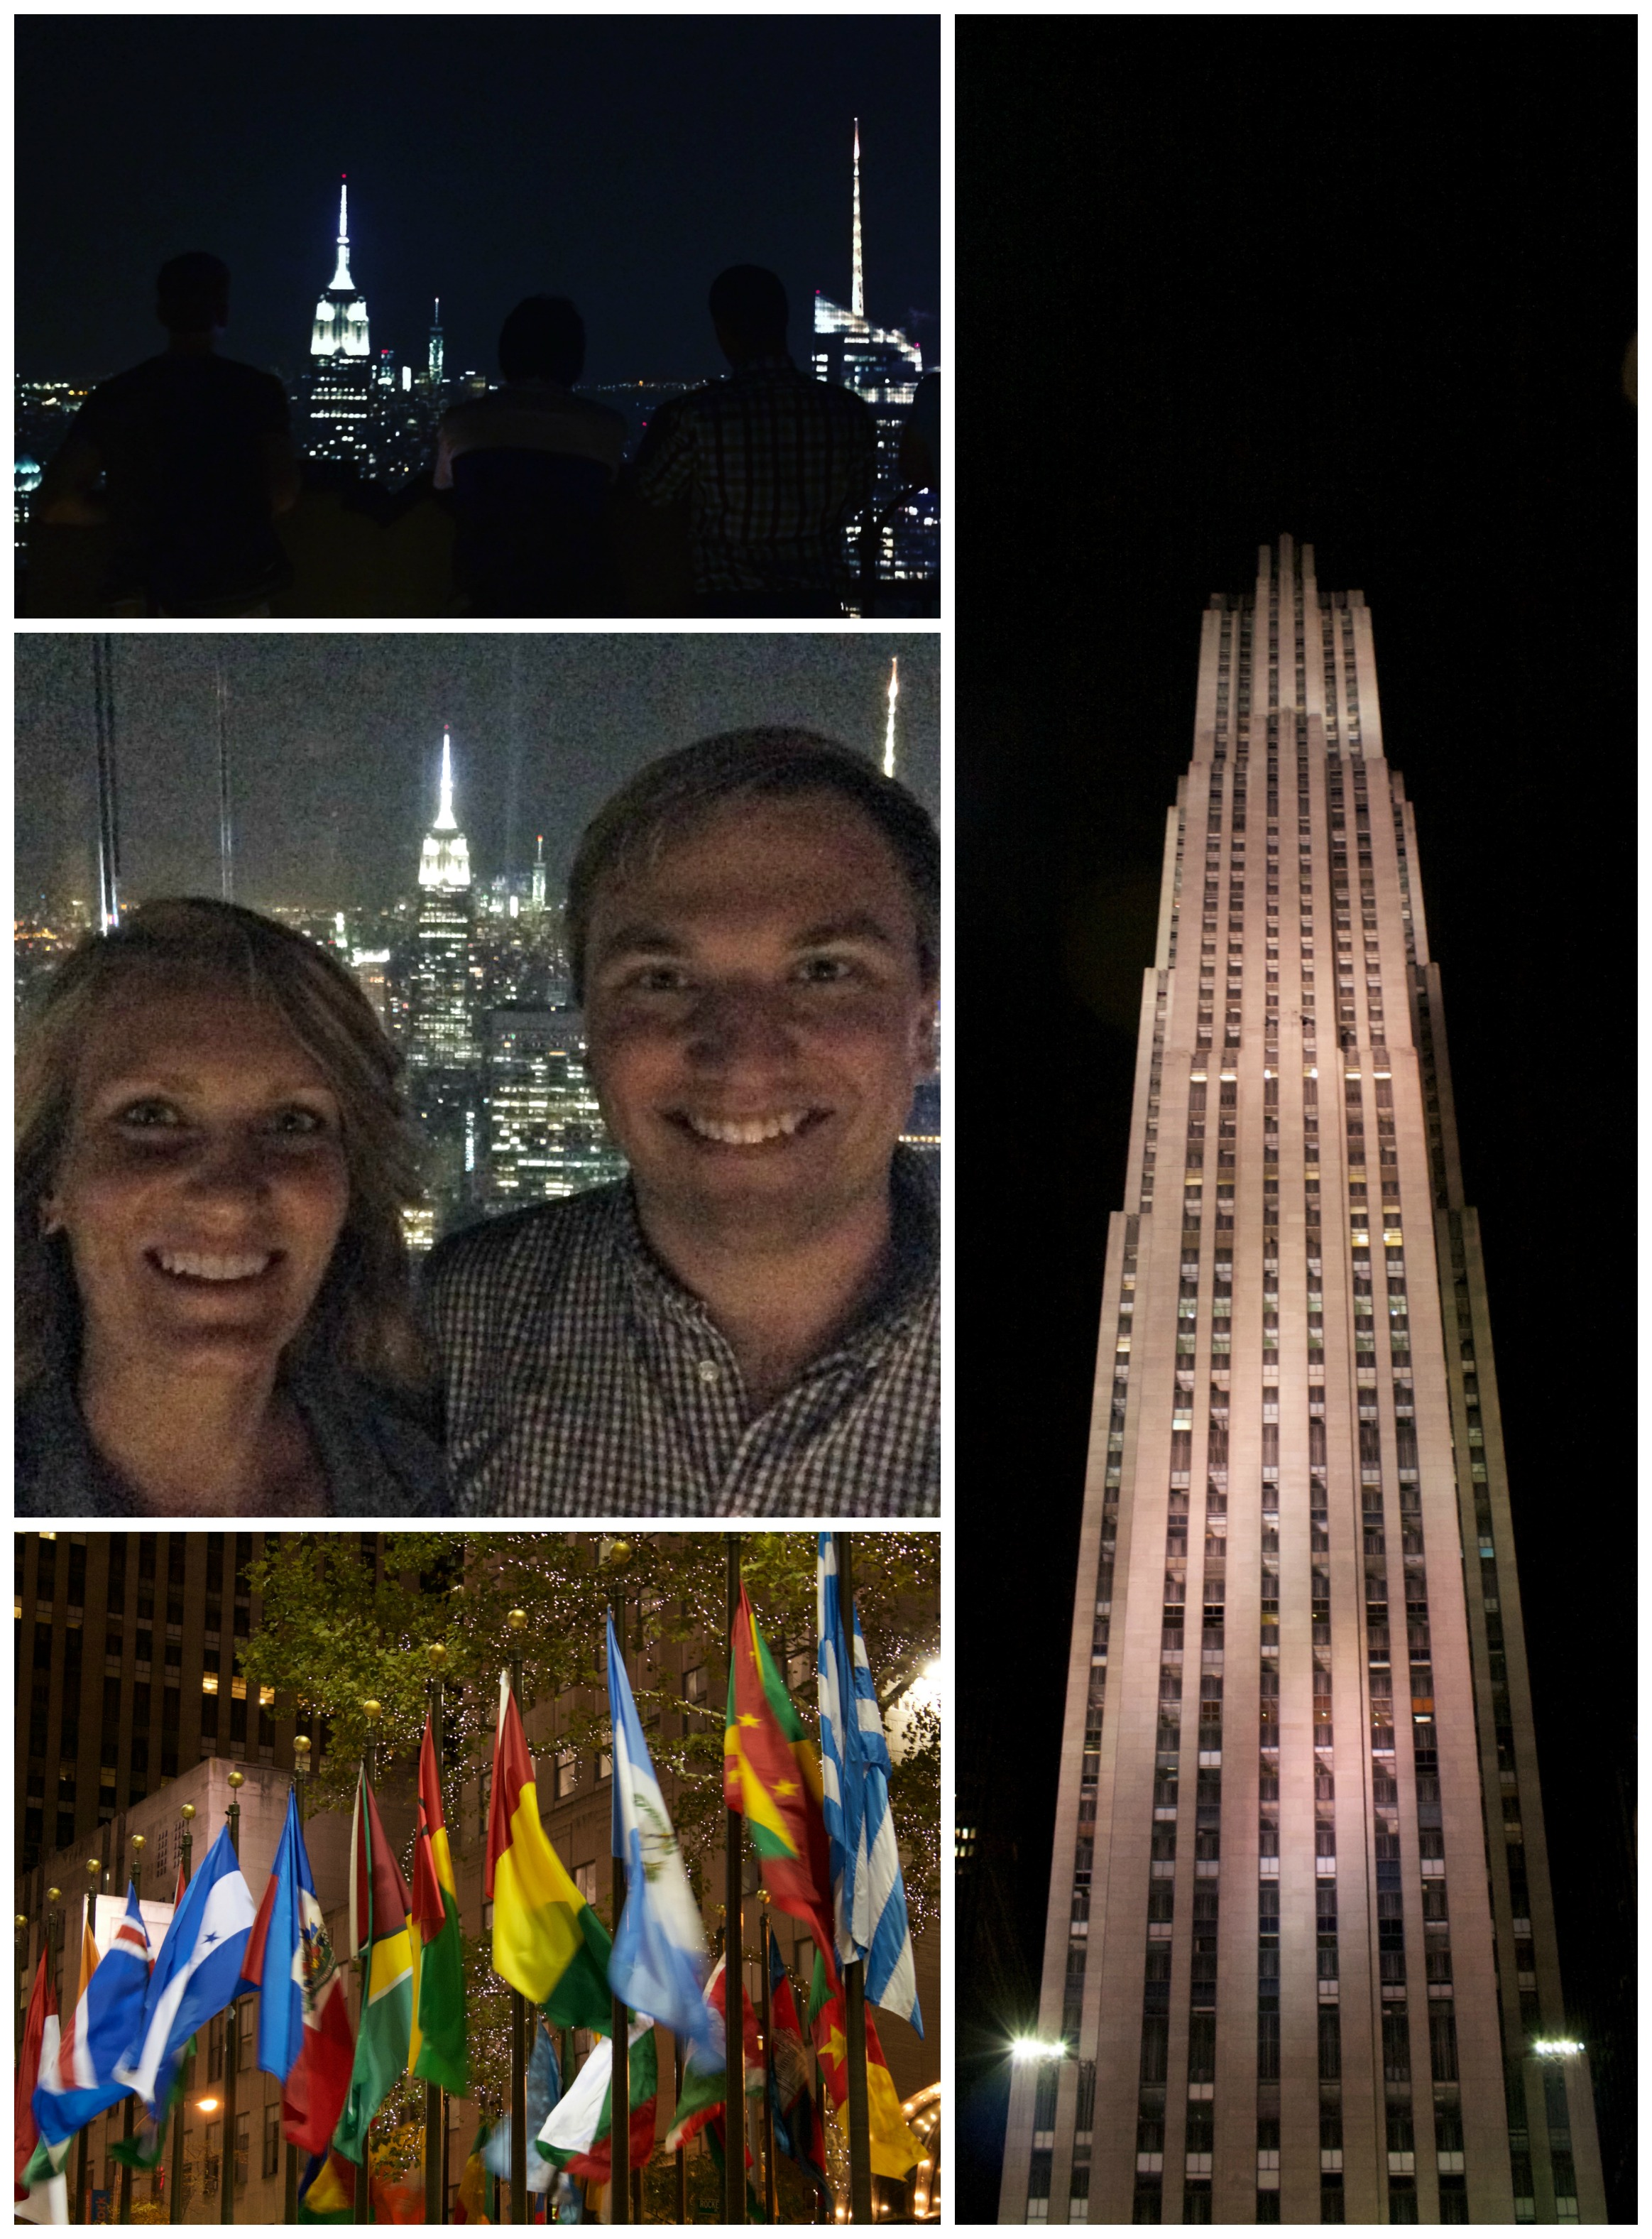 Rockefeller Center is one of the most iconic New York City outdoor sights. Don't miss it!